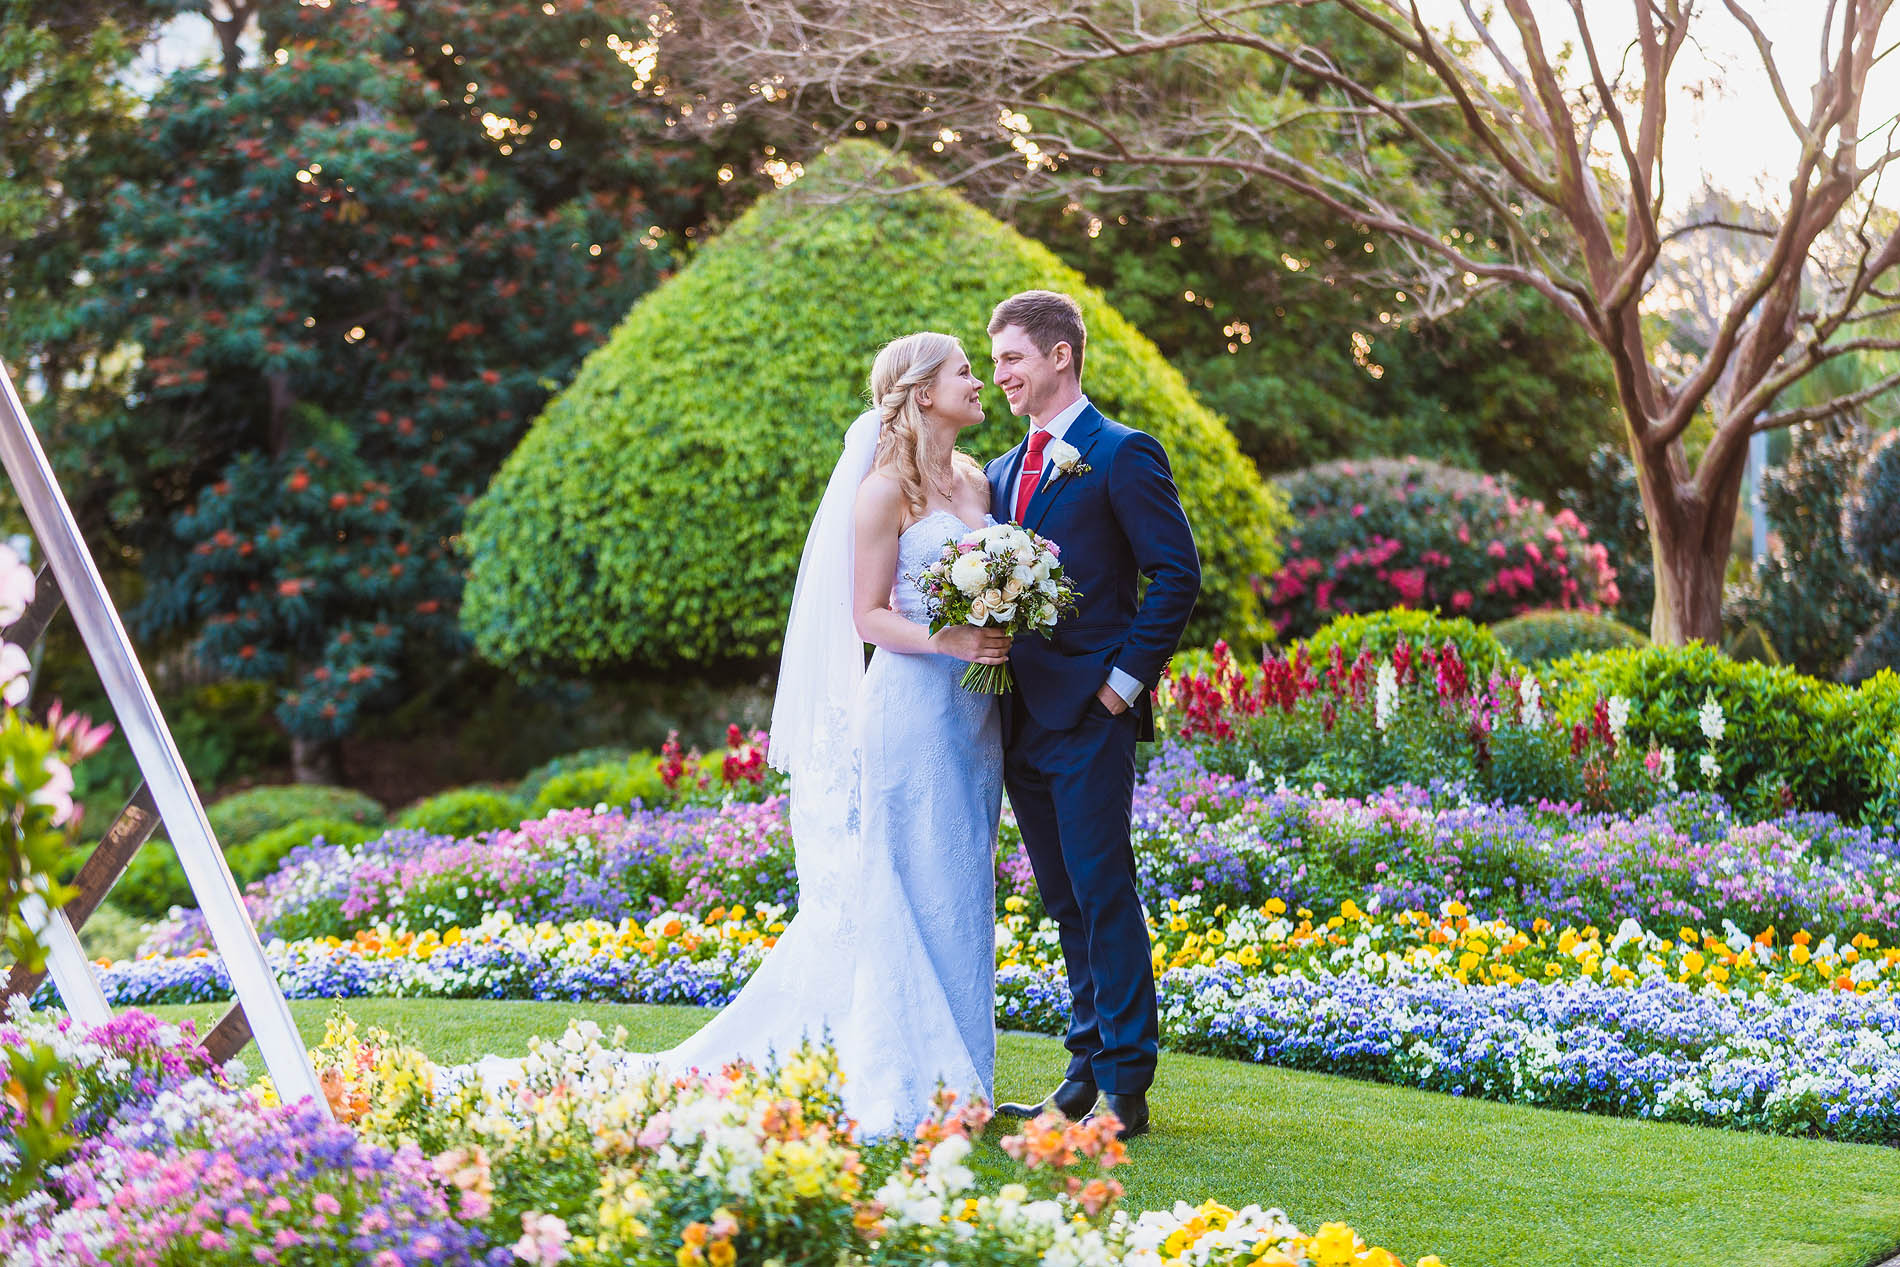 180922 0523 roma street parkland garden wedding flowers colourful couple